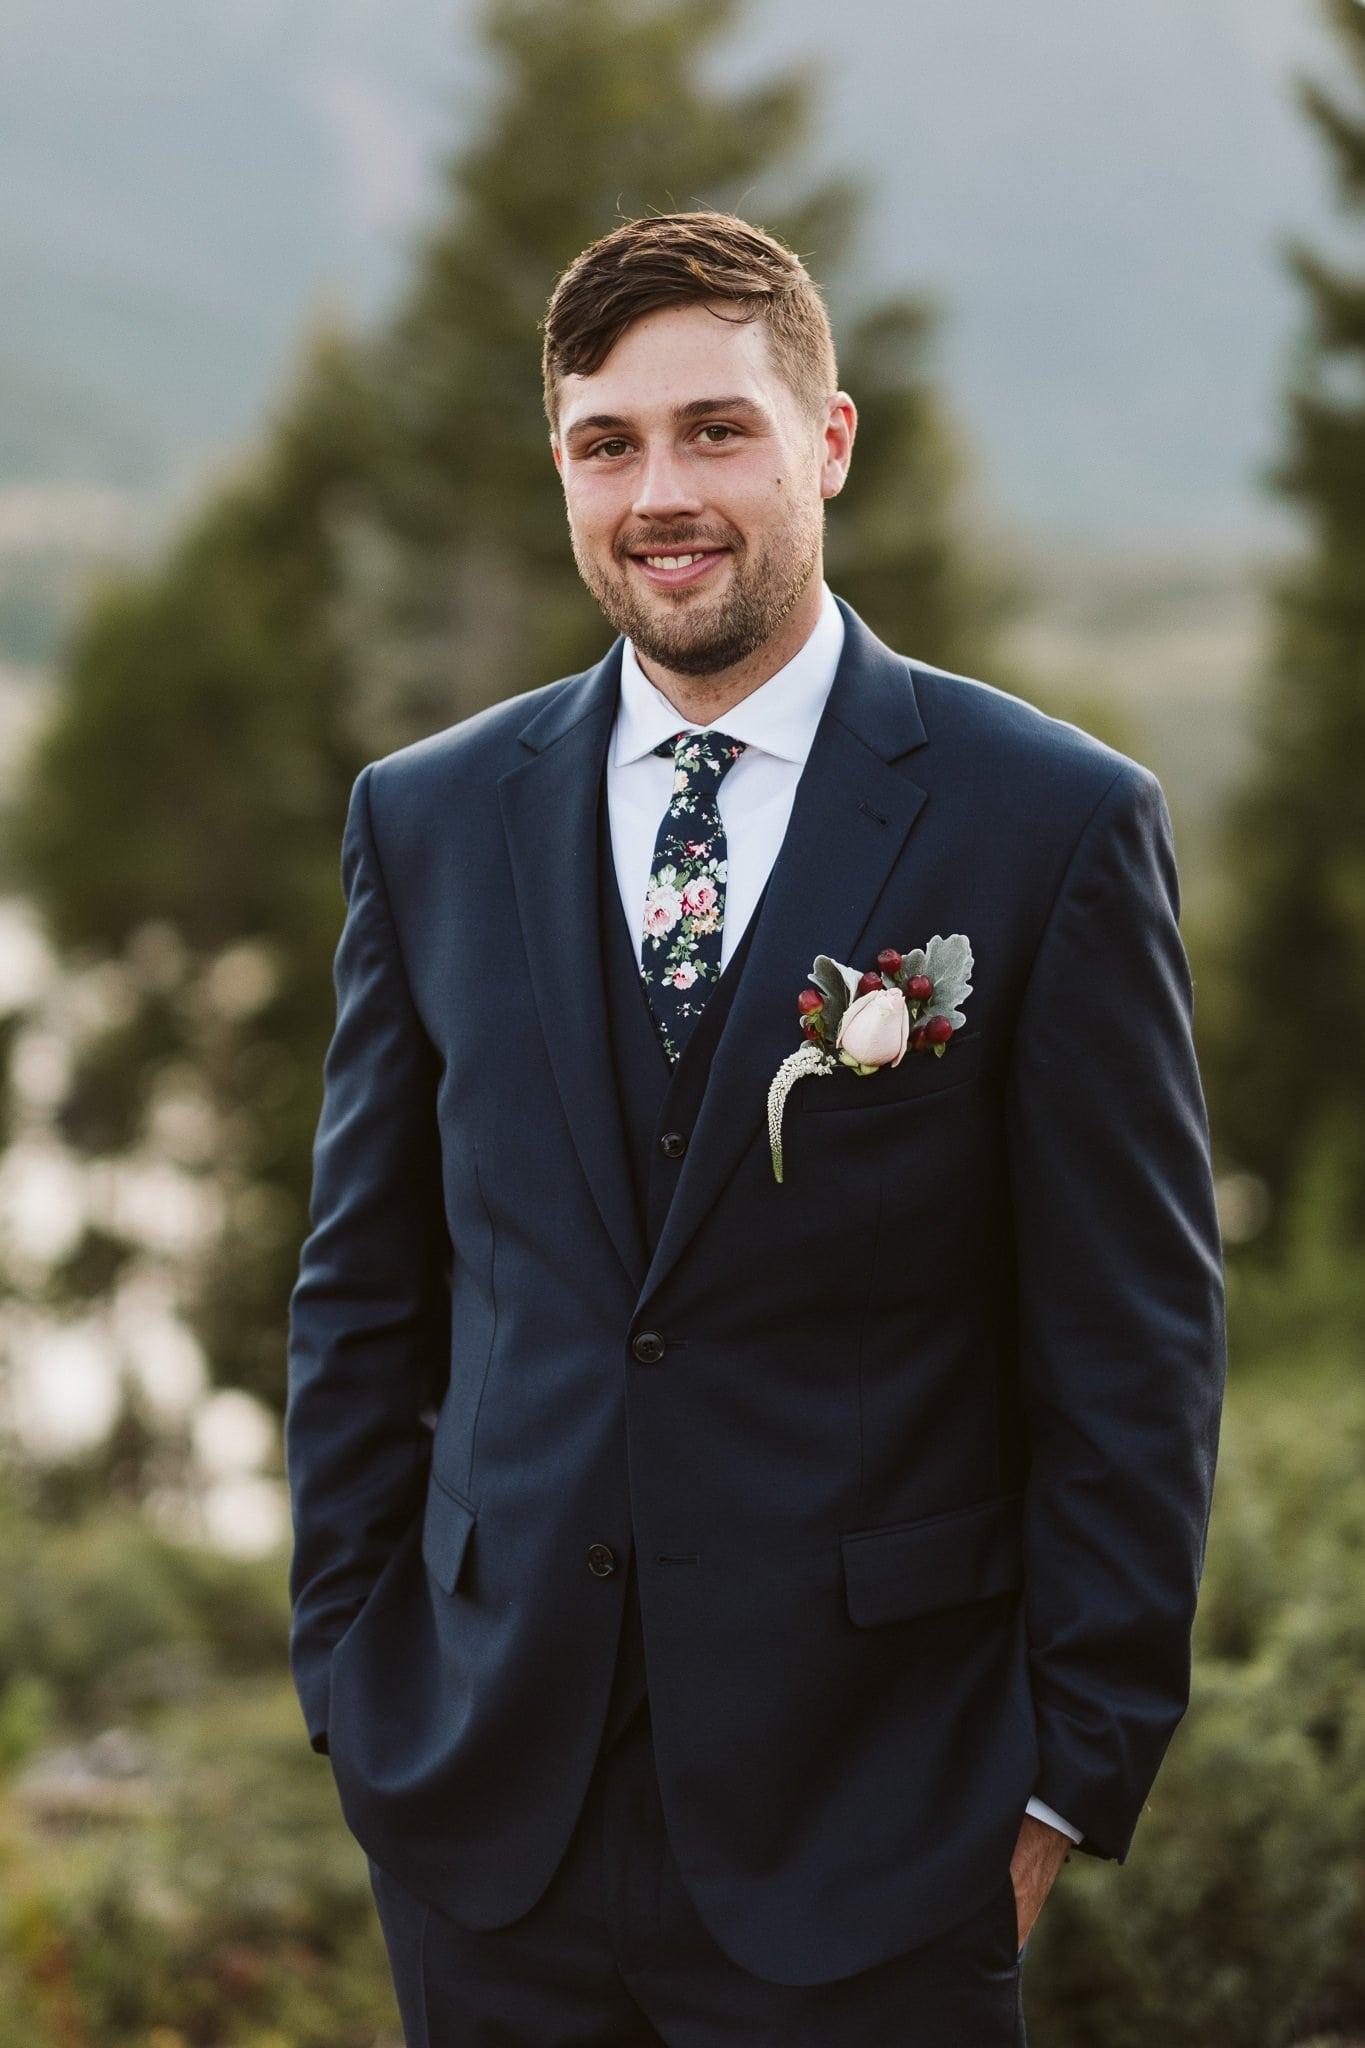 Groom wearing dark blue suit with vest and floral tie